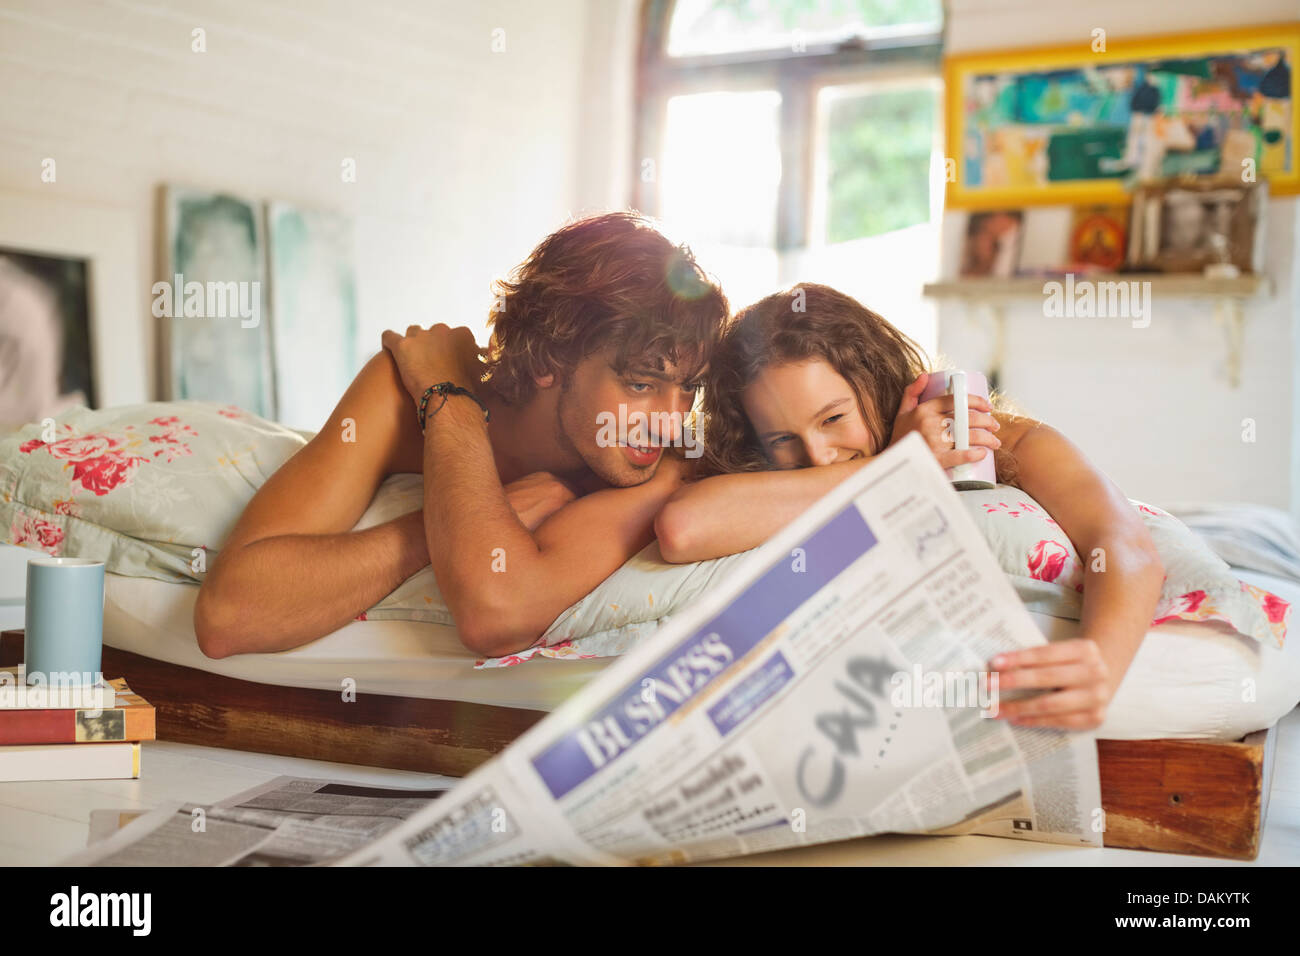 Couple reading newspaper together in bed - Stock Image